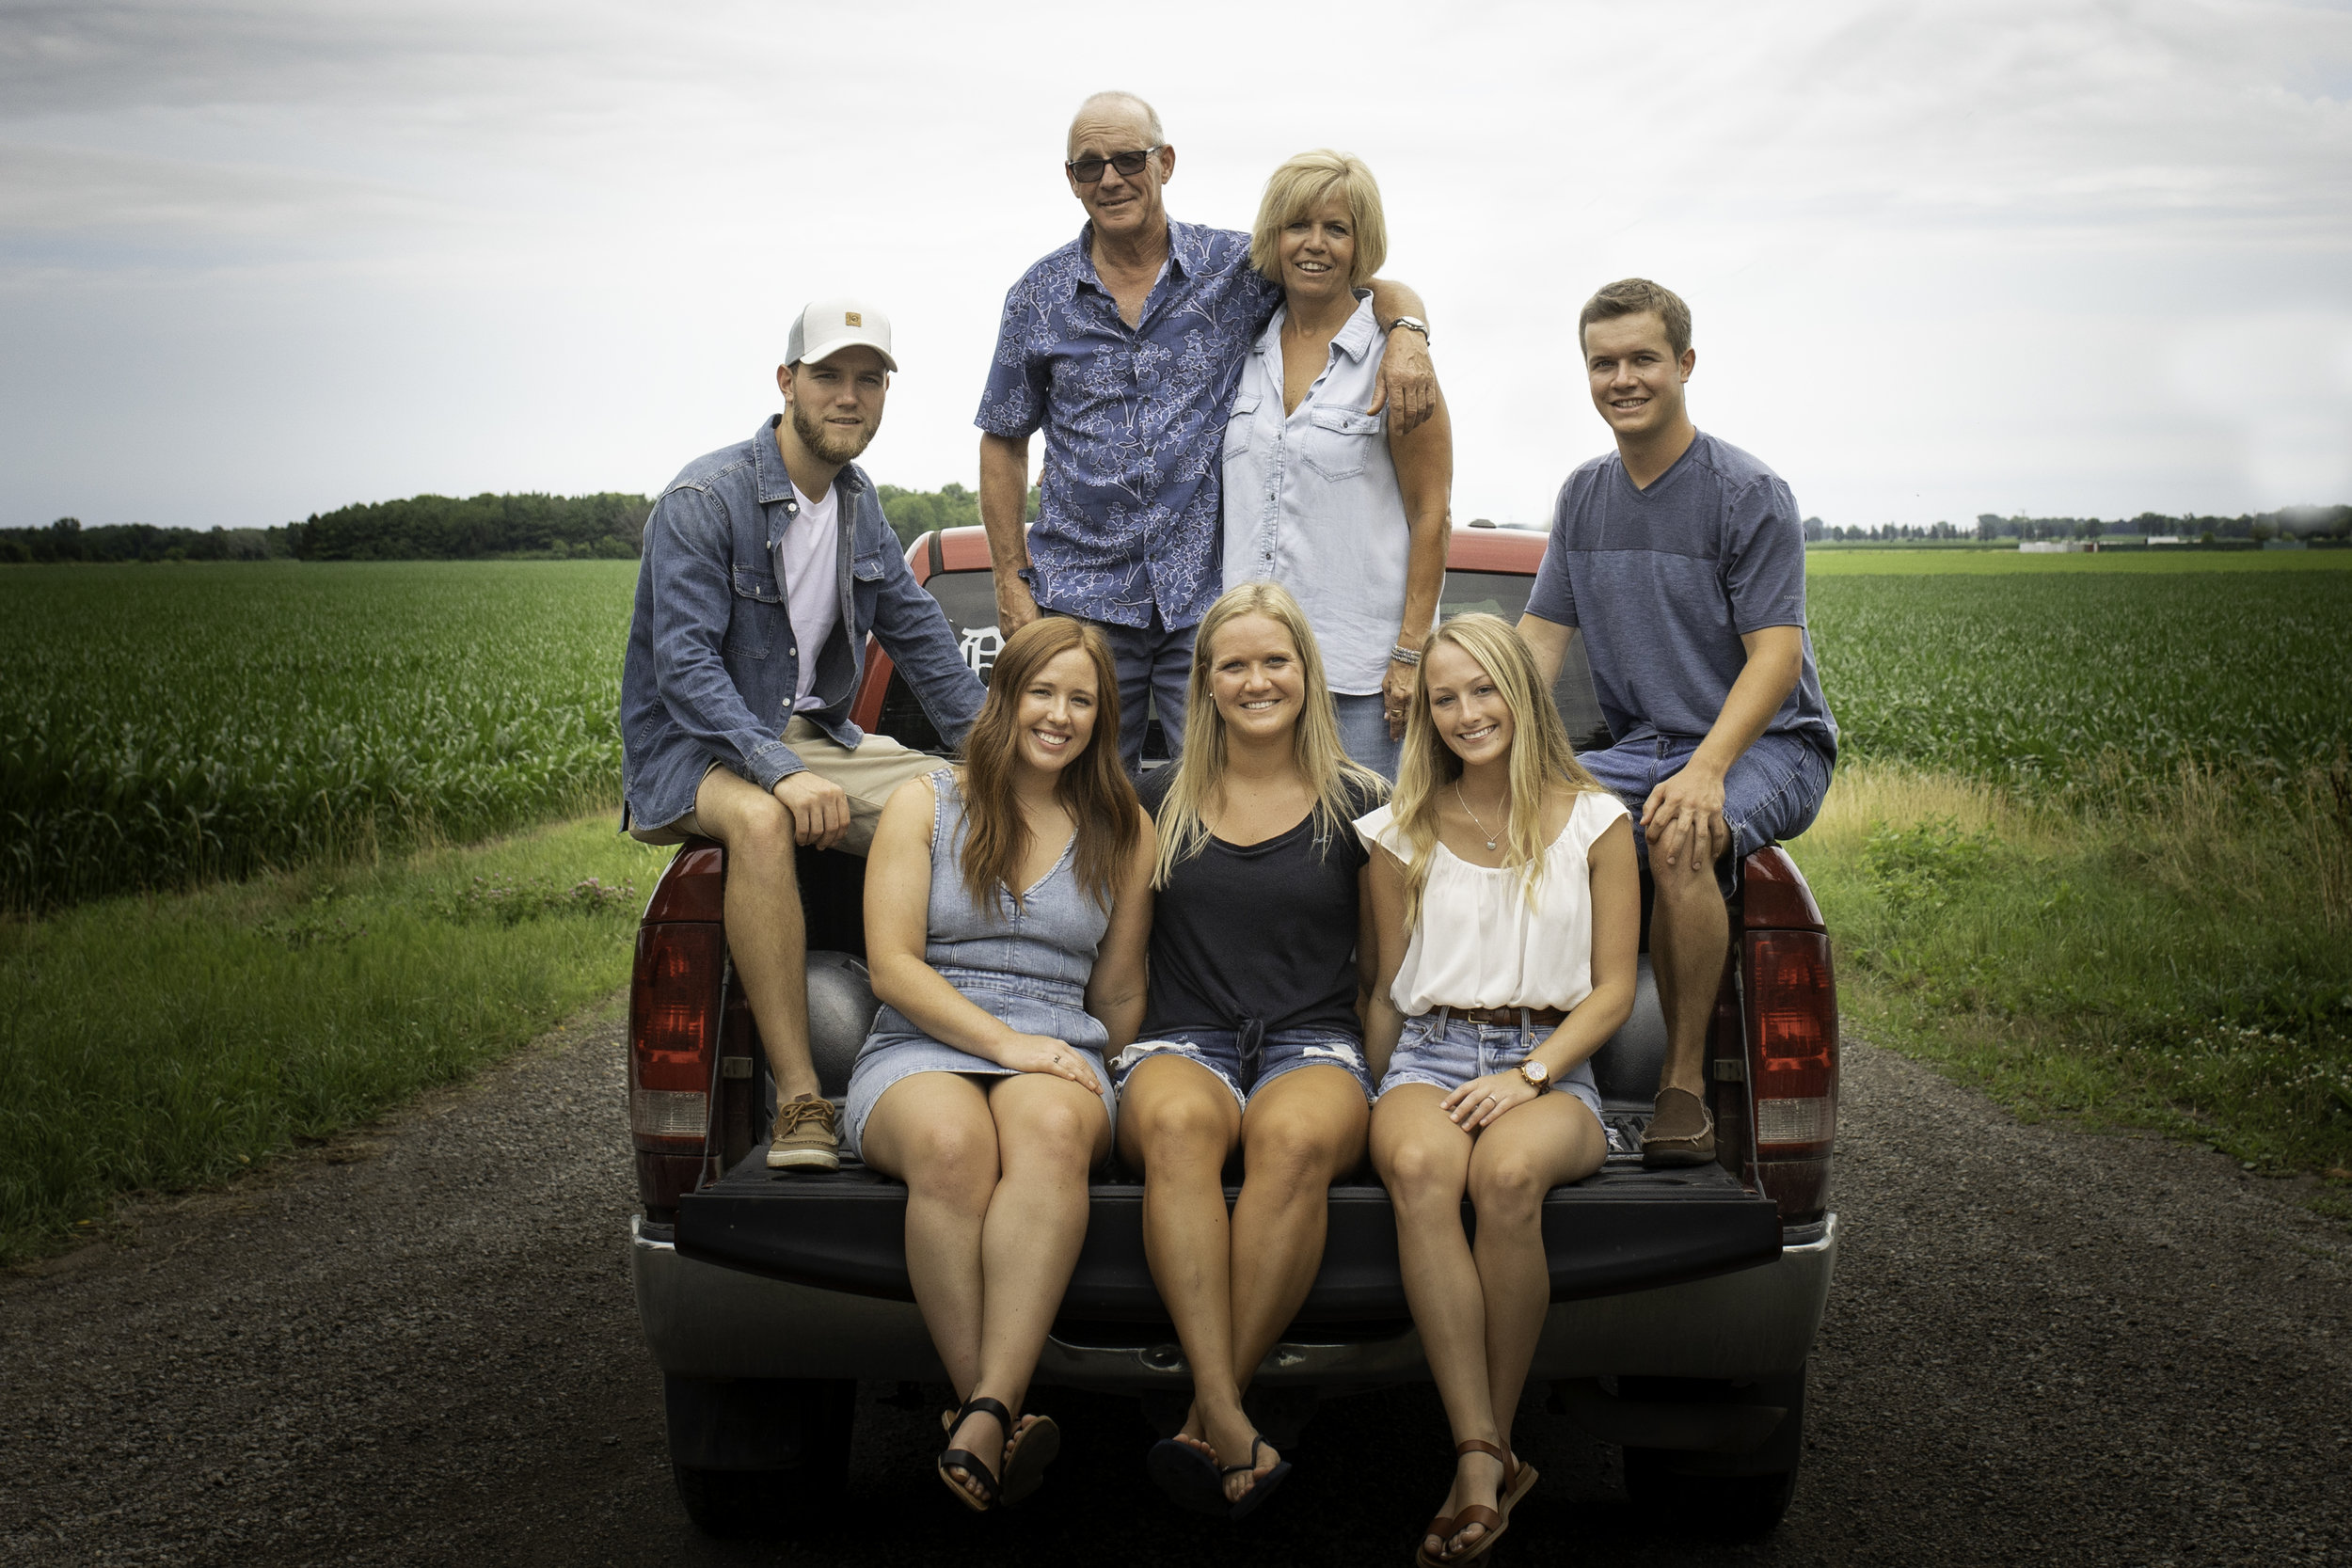 Family-agricultural-photographer-jodie-aldred-photography-rural-country-farm-farmers-ontario-london-huron-middlesex-elgin-chatham-elgin-rural-country-outdoors--corn-truck-dodge-gravel-road-summer.jpg